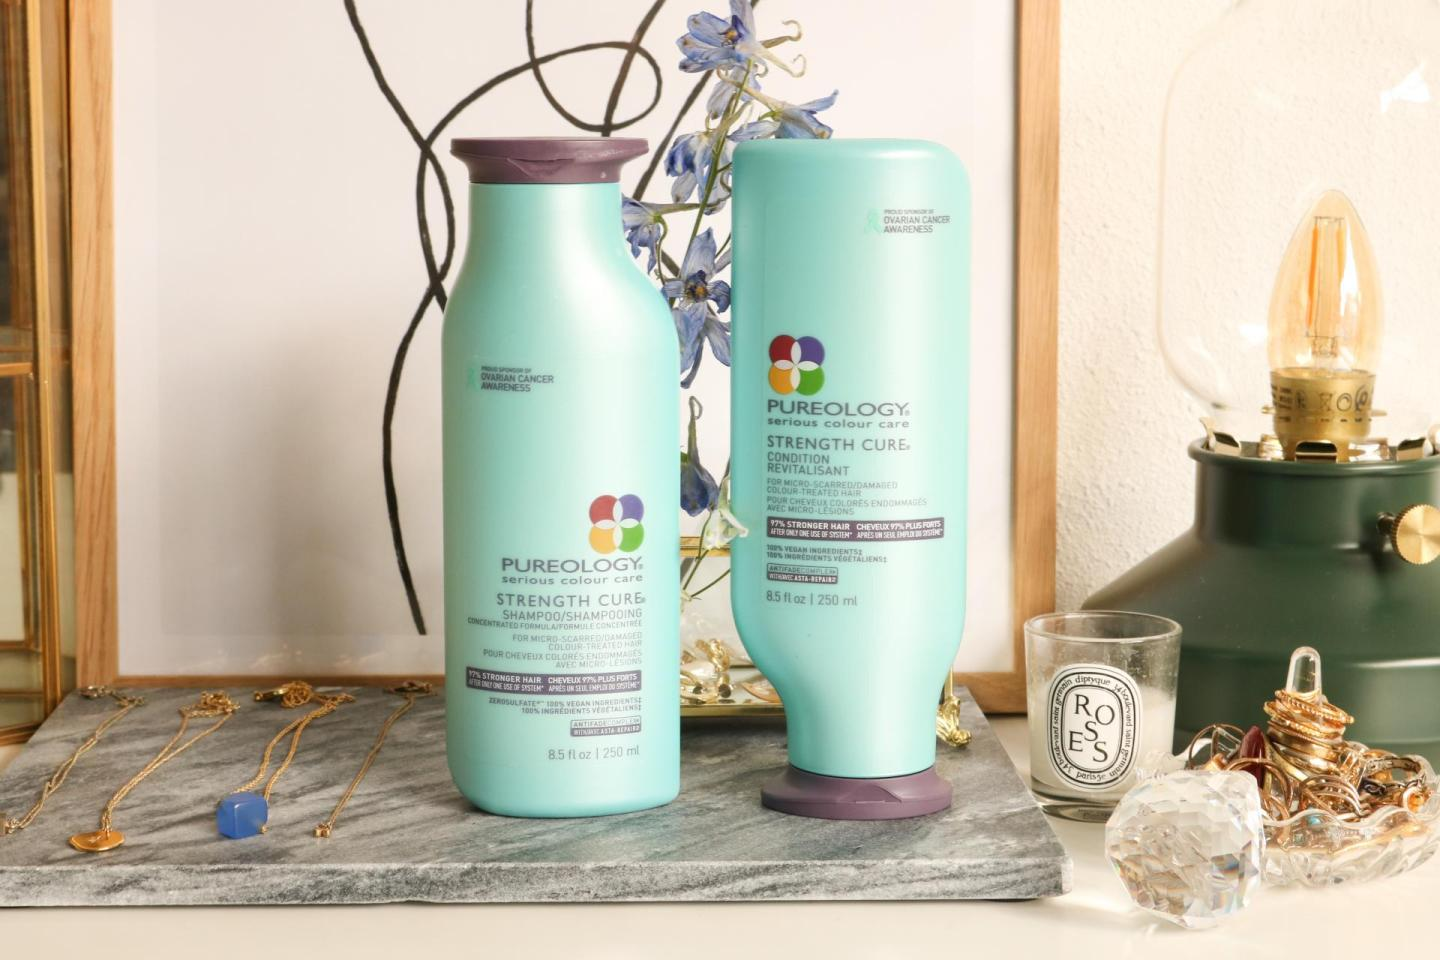 Pureology Strength Cure Shampoo and Condition